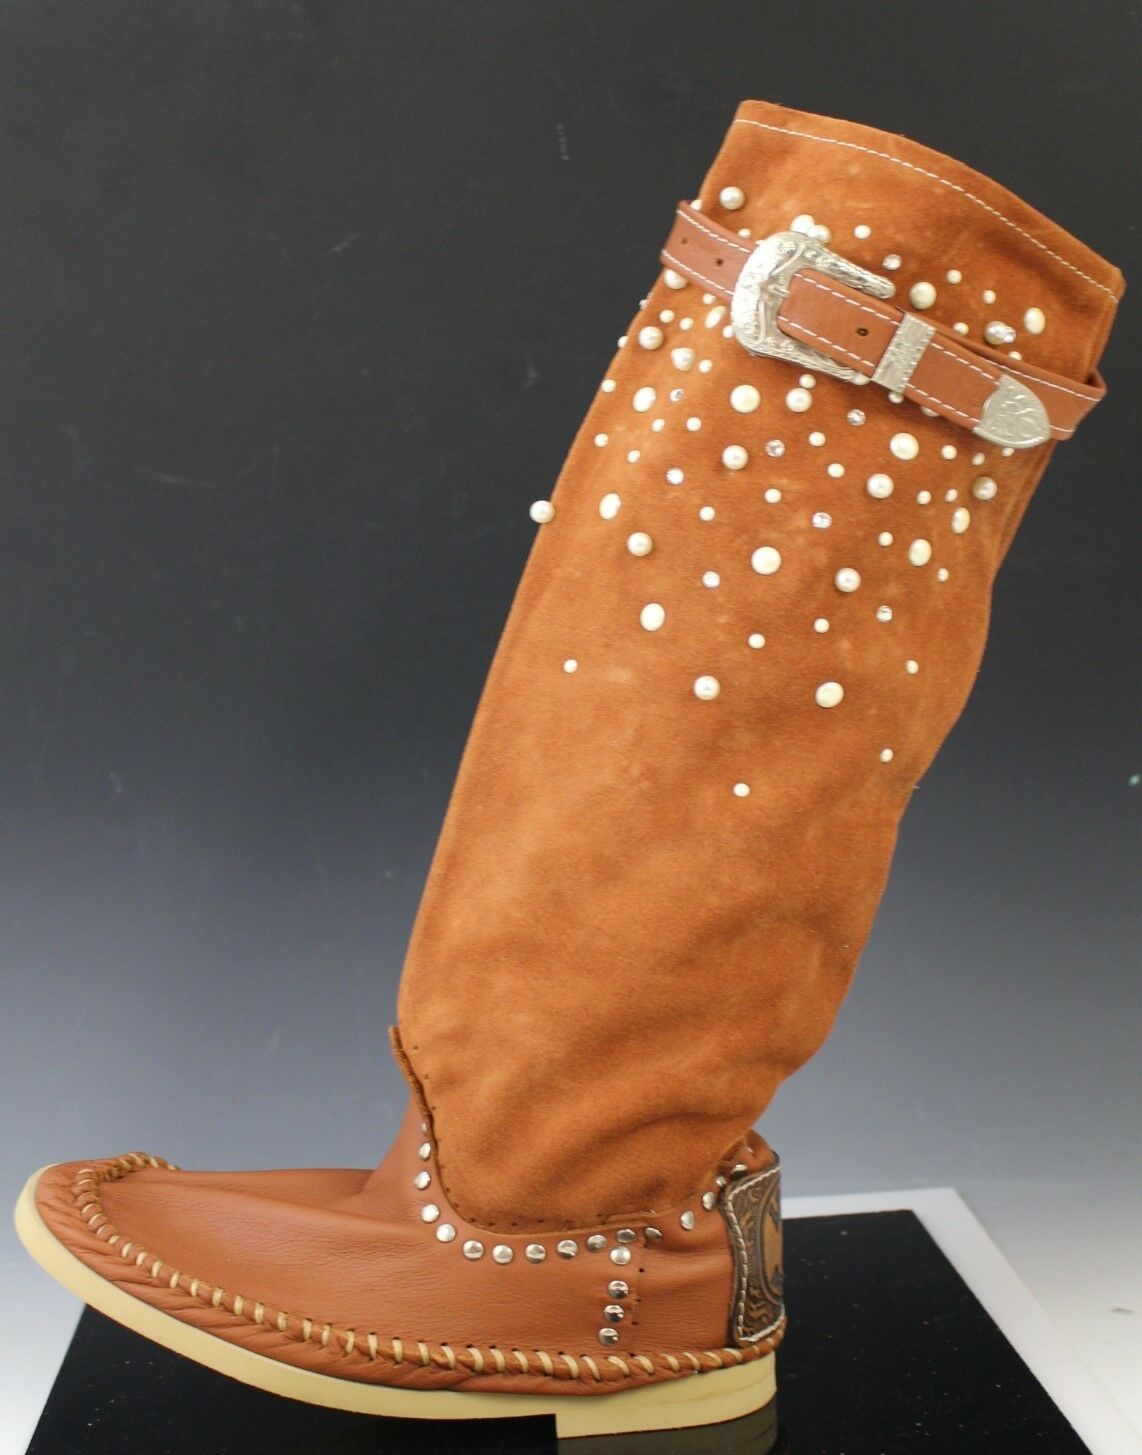 Hector Hector Hector Italian Leather Pearl Stud Moccasin Boots shoes SCAMOSCIATO Caramel US 8 3ed47c